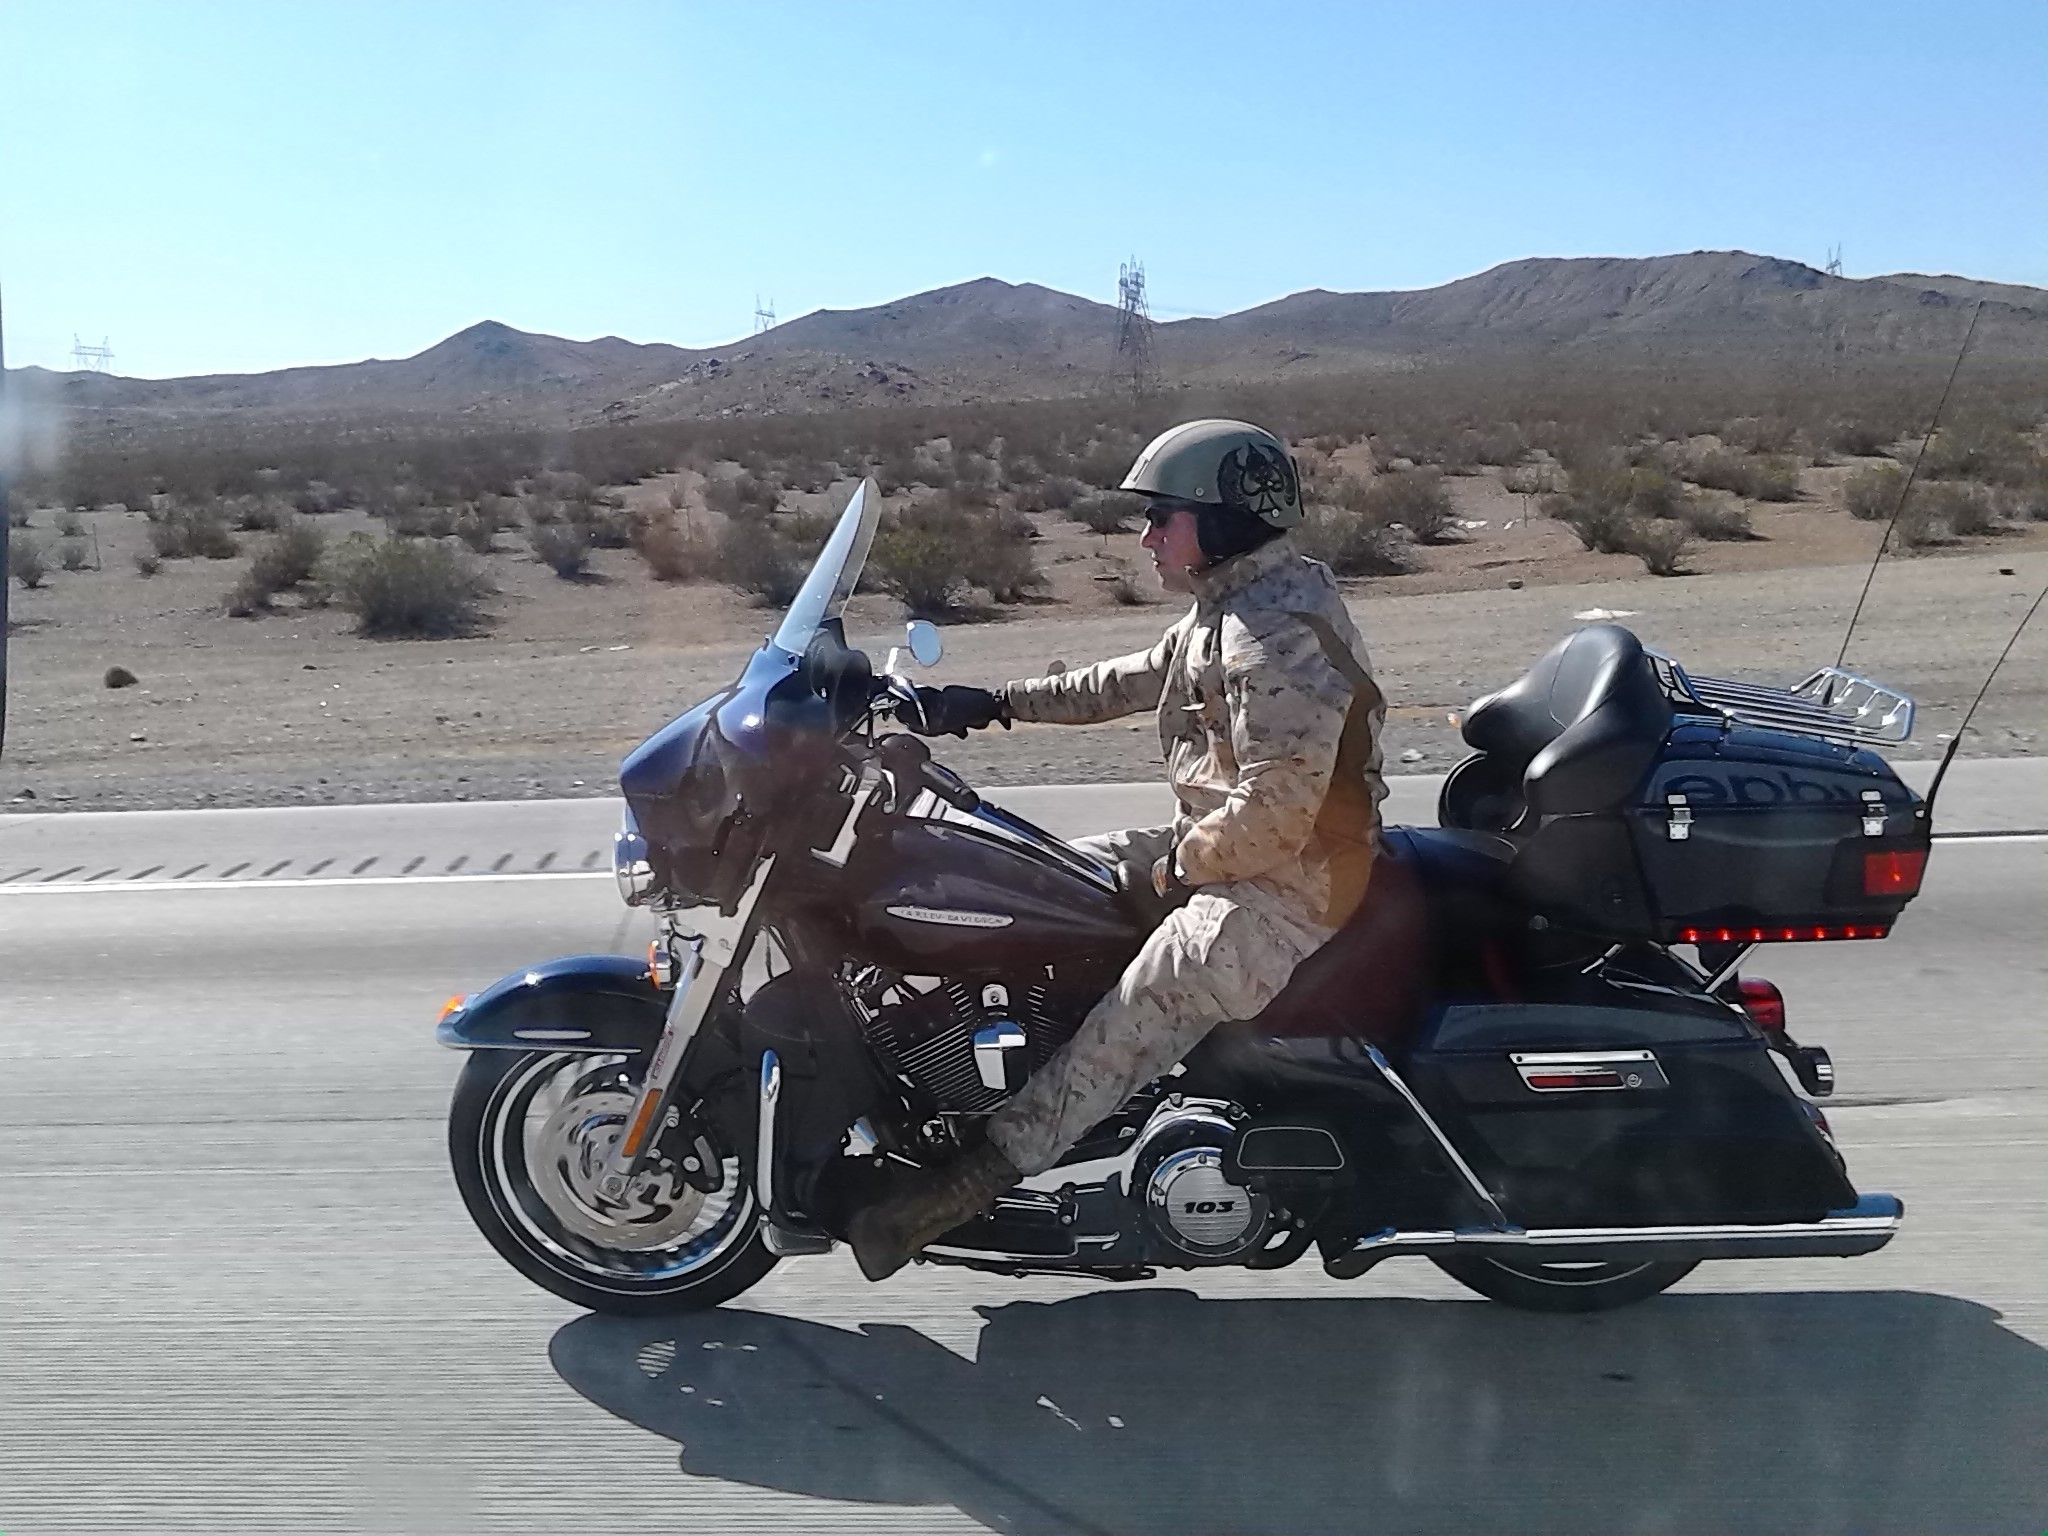 We paced this biker all afternoon to get a photo of his camo and helmet.